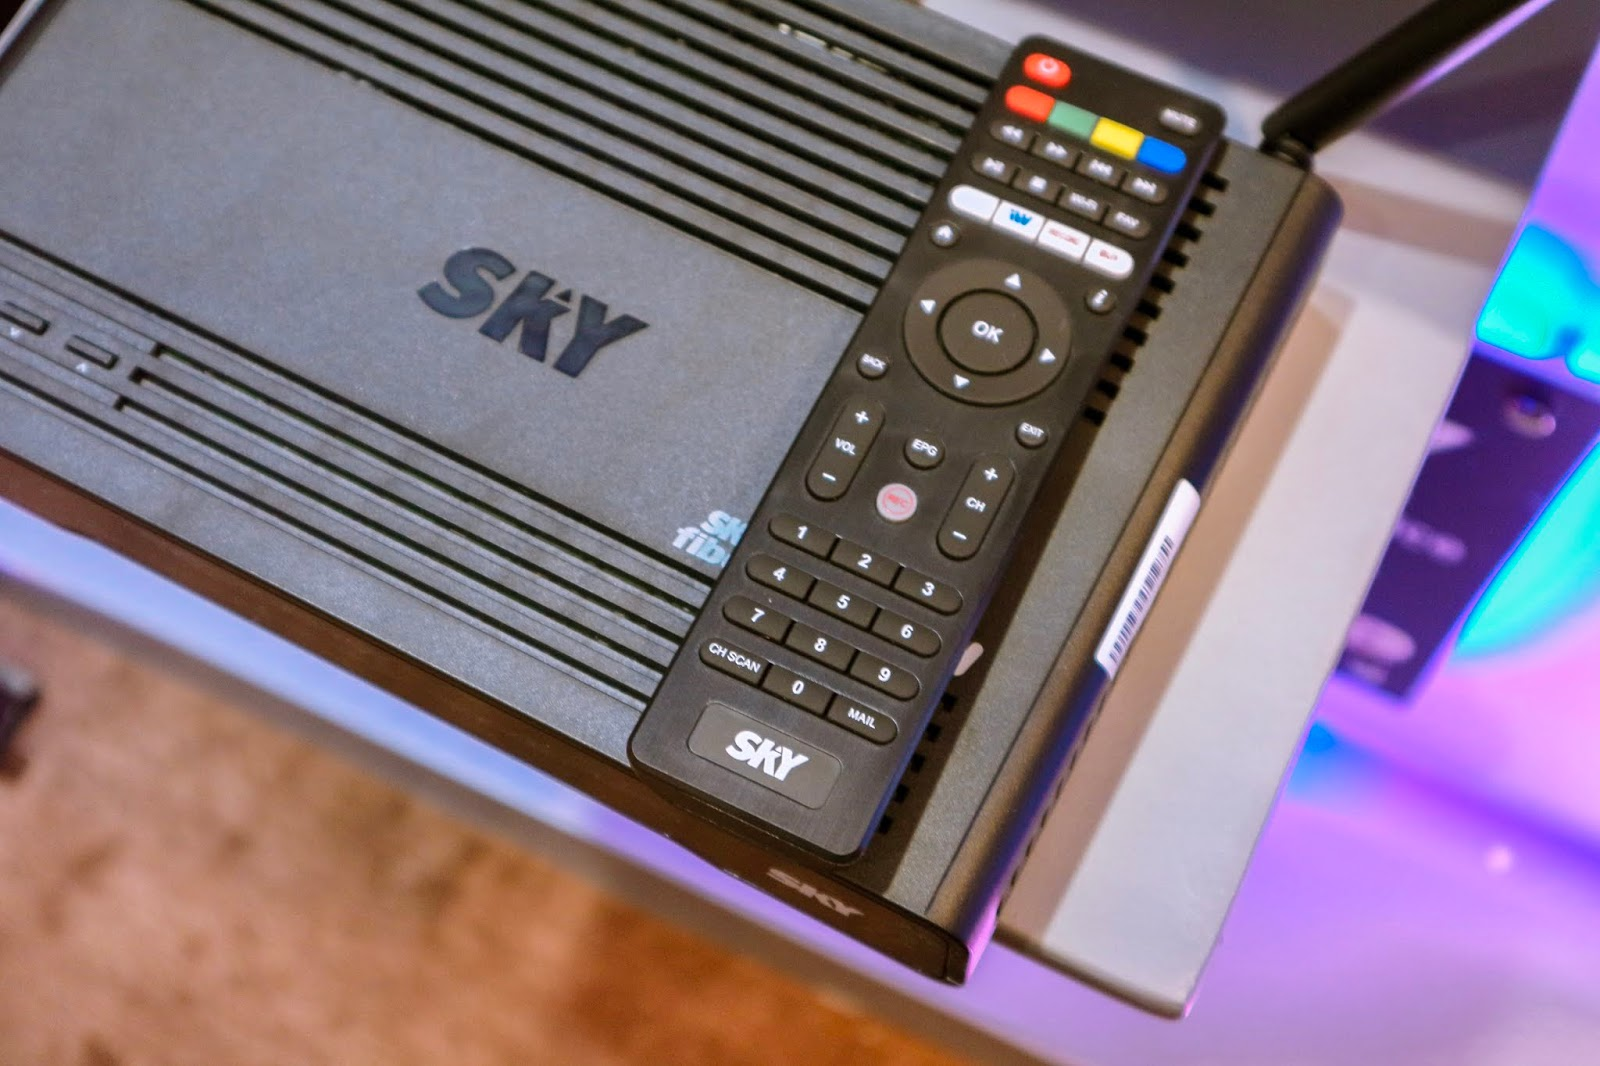 SKY FIBER launches new speed plans and the first ALL-IN BOX